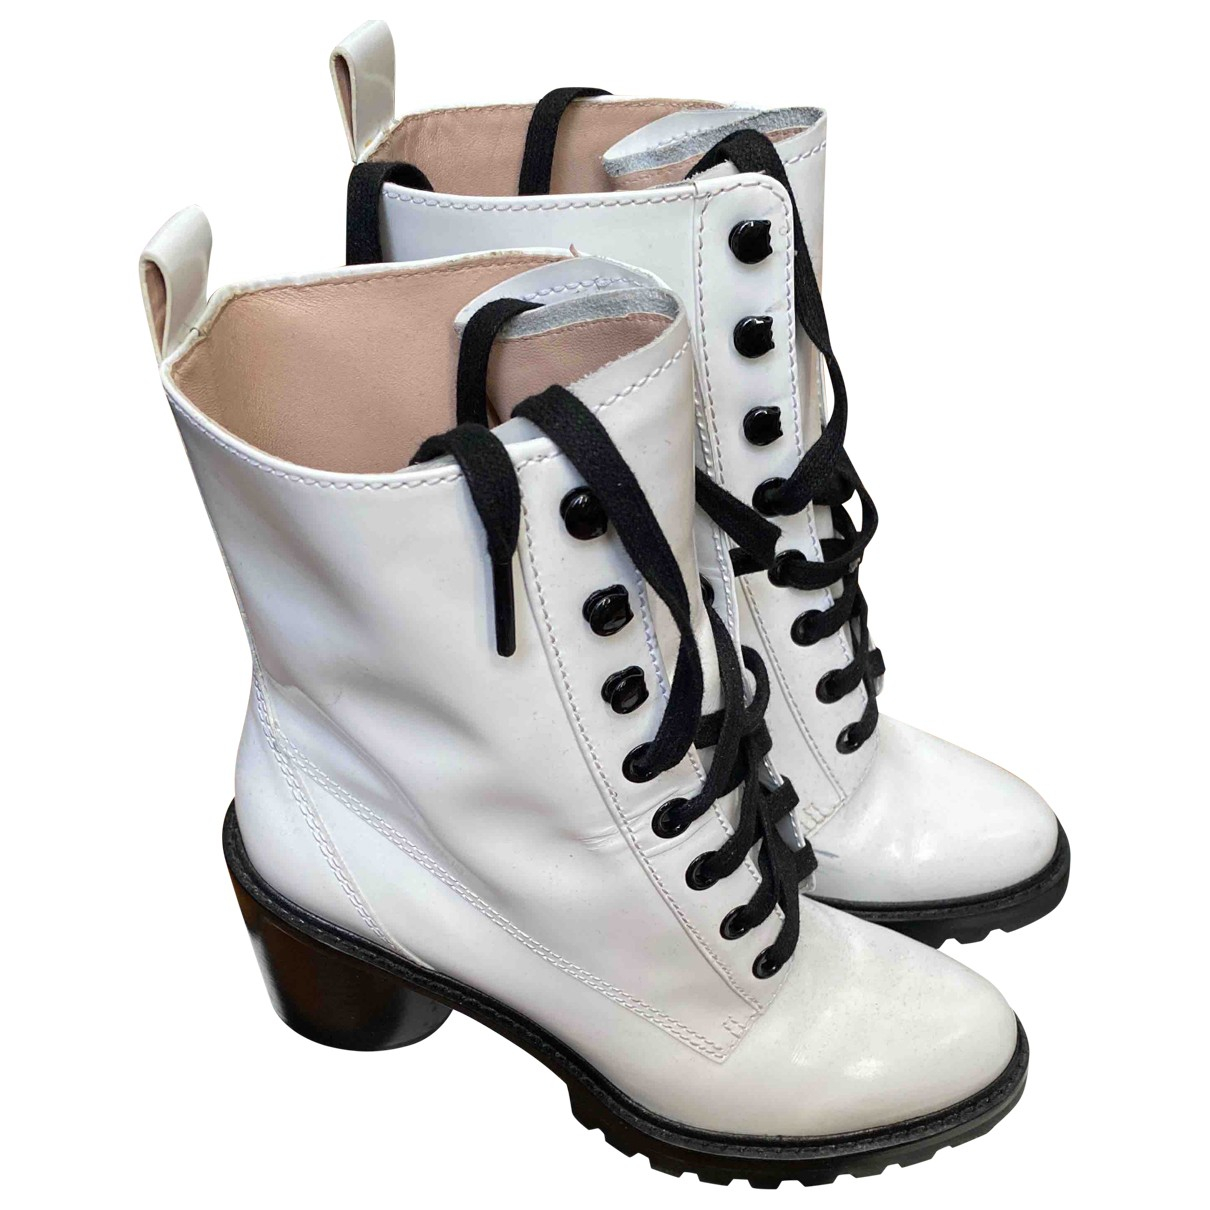 Marc Jacobs \N White Patent leather Boots for Women 39 EU